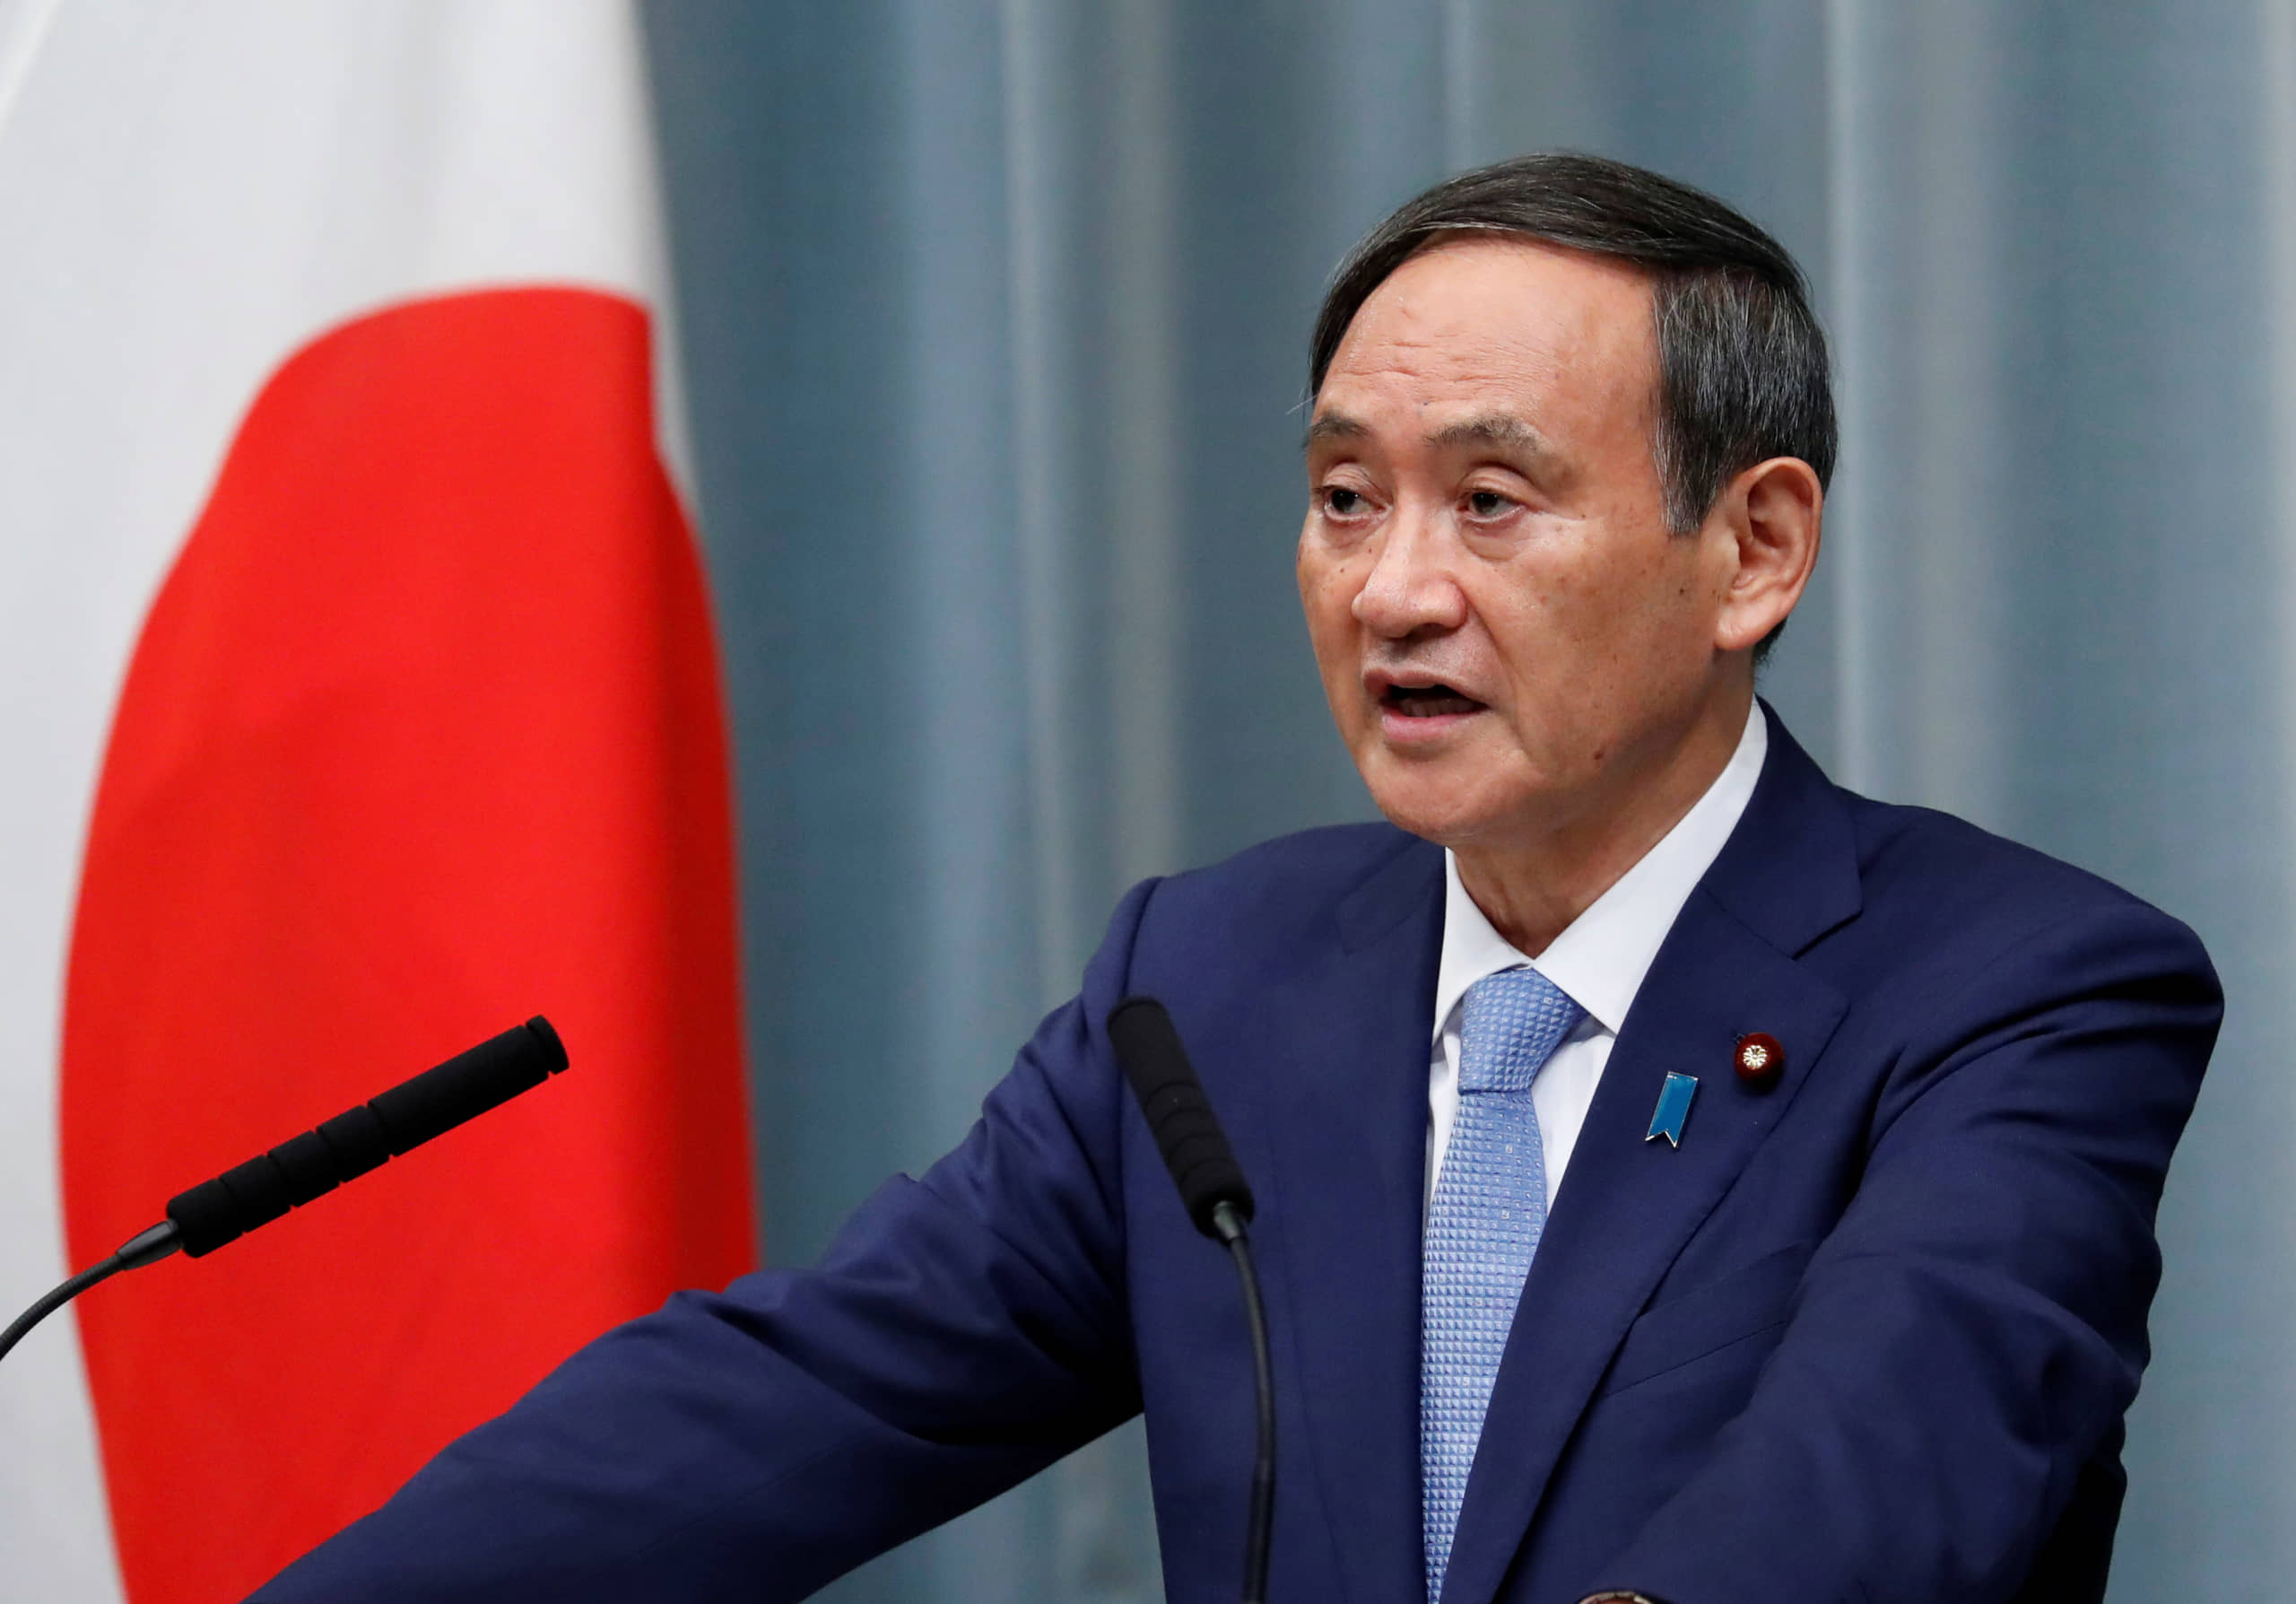 Chief Cabinet Secretary Yoshihide Suga speaks at a news conference after a Cabinet reshuffling at the Prime Minister's Office in Tokyo in September last year. | REUTERS